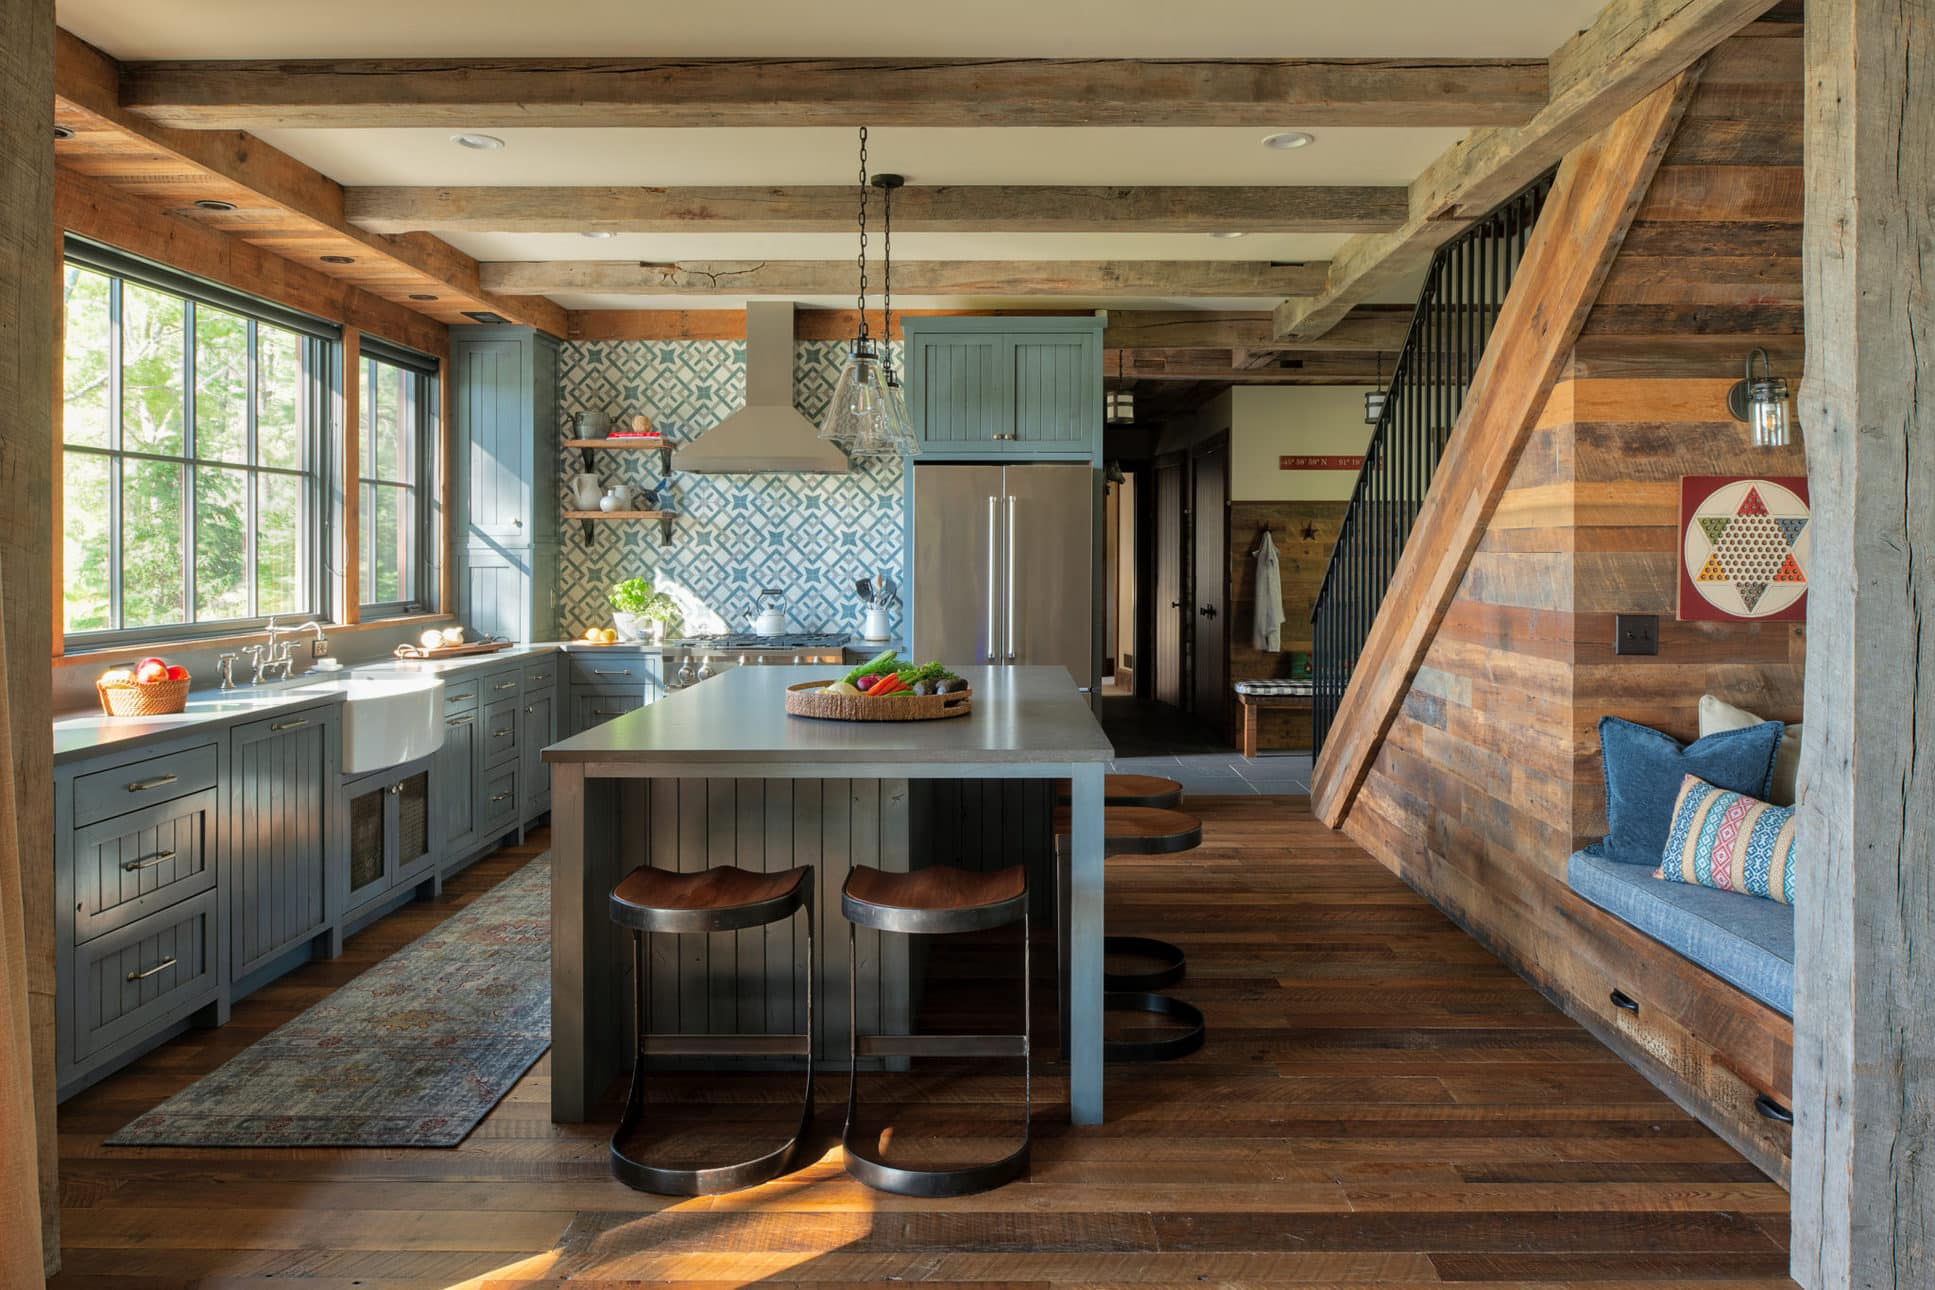 7 Ideas For Using Reclaimed Wood In Your Home